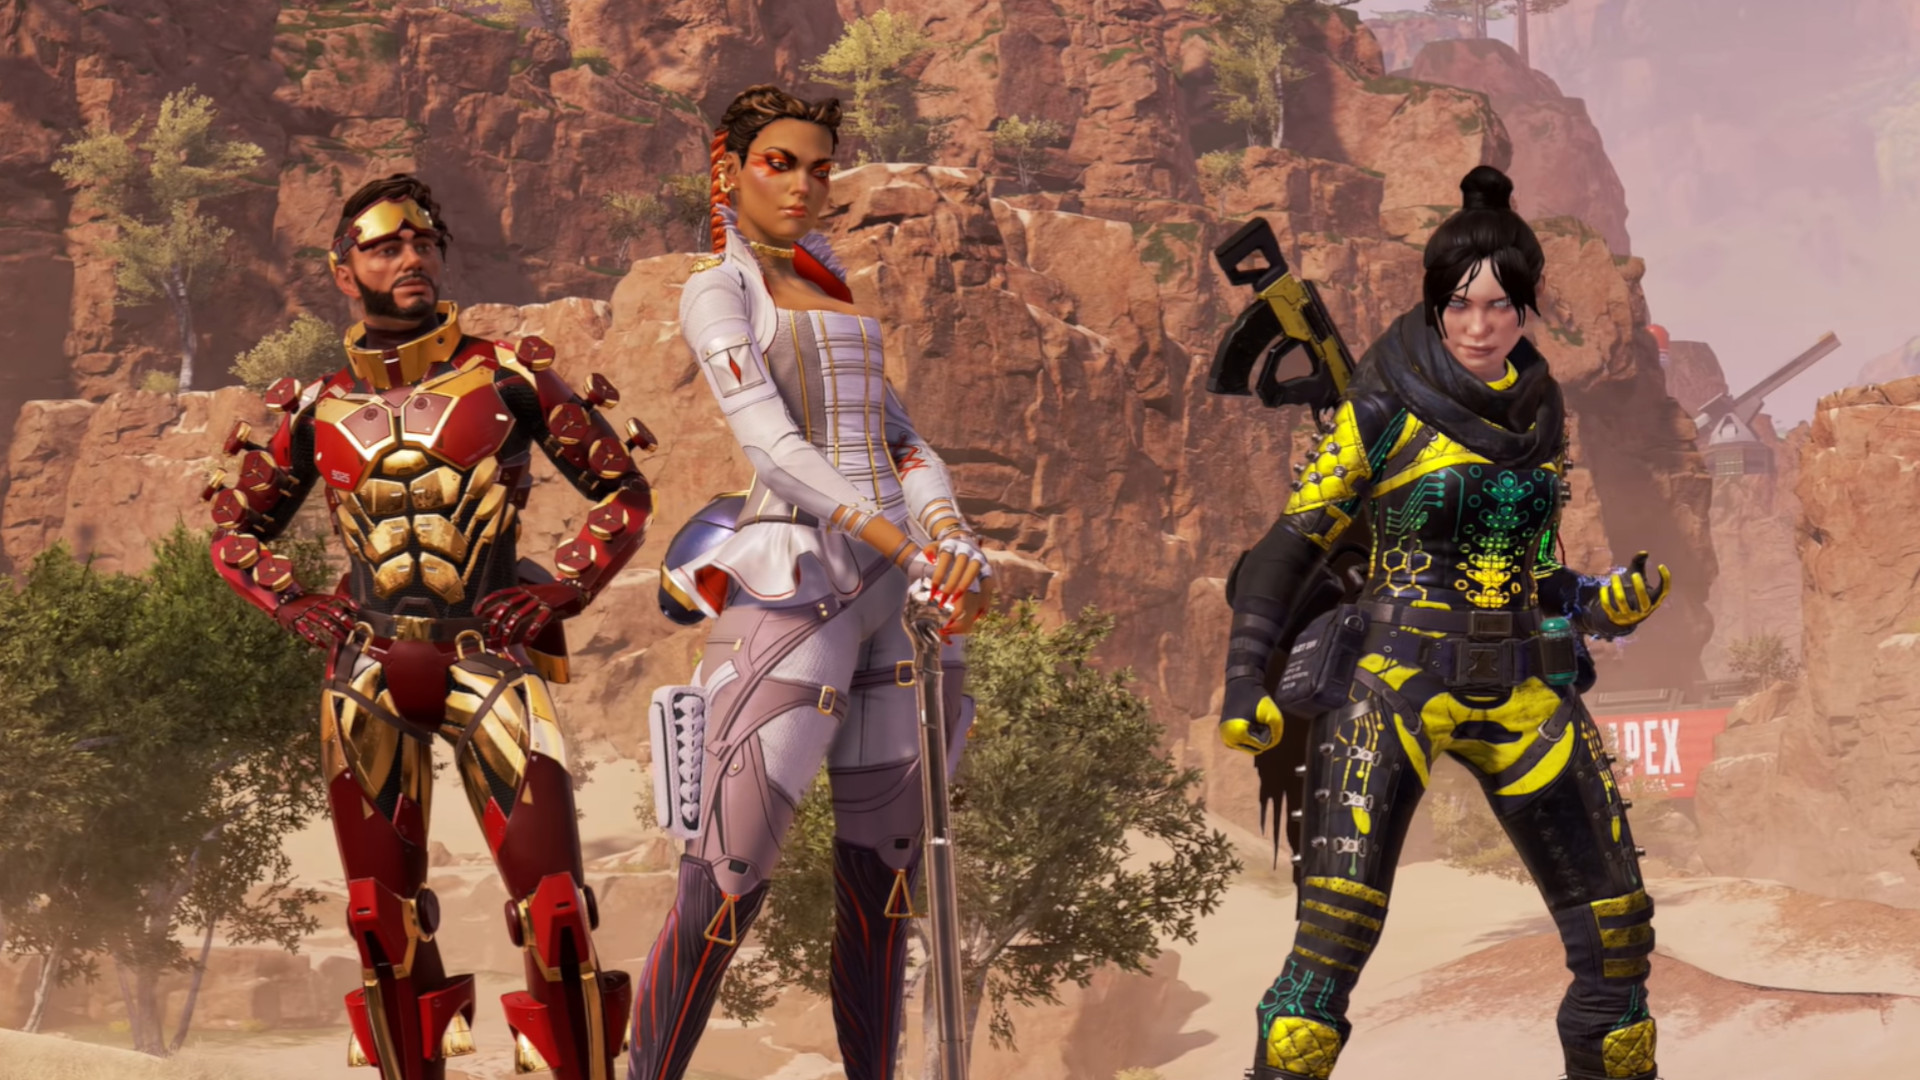 Apex Legends is more focused on character-vs-character combat than Titanfall ever was.